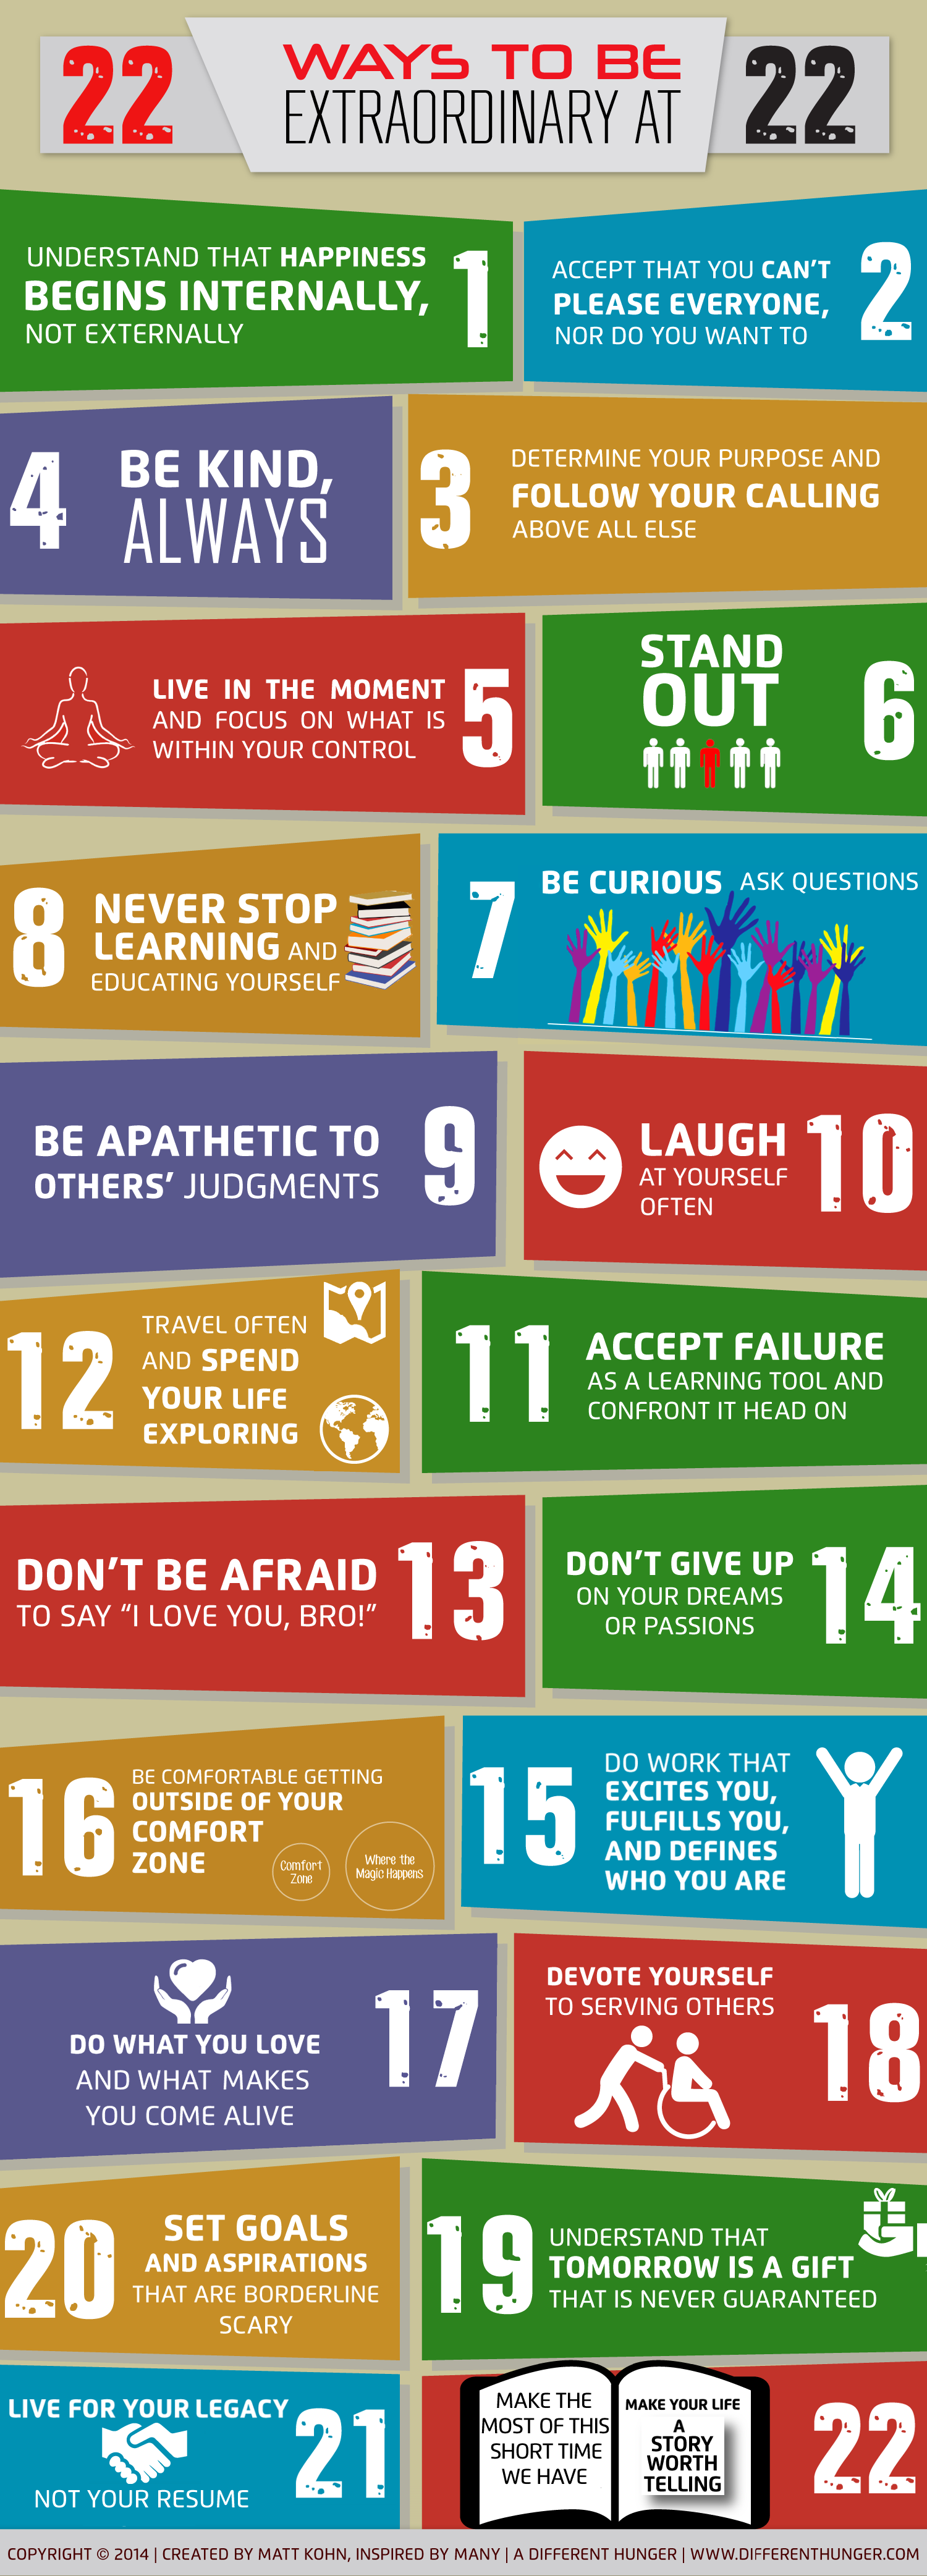 22 Ways to Be Extraordinary at 22 Infographic